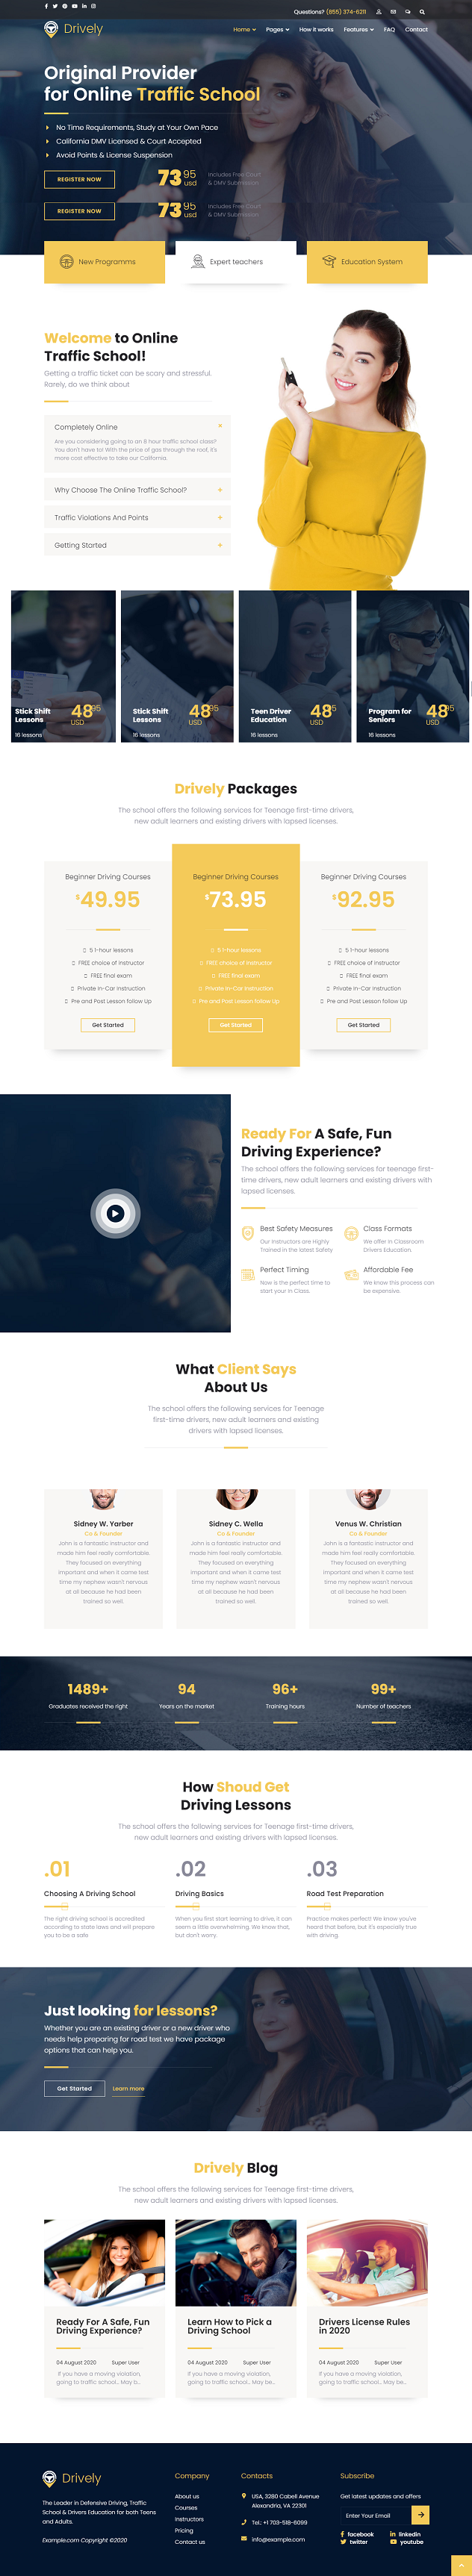 Drively - Driving School Joomla Template | Drivers - 2